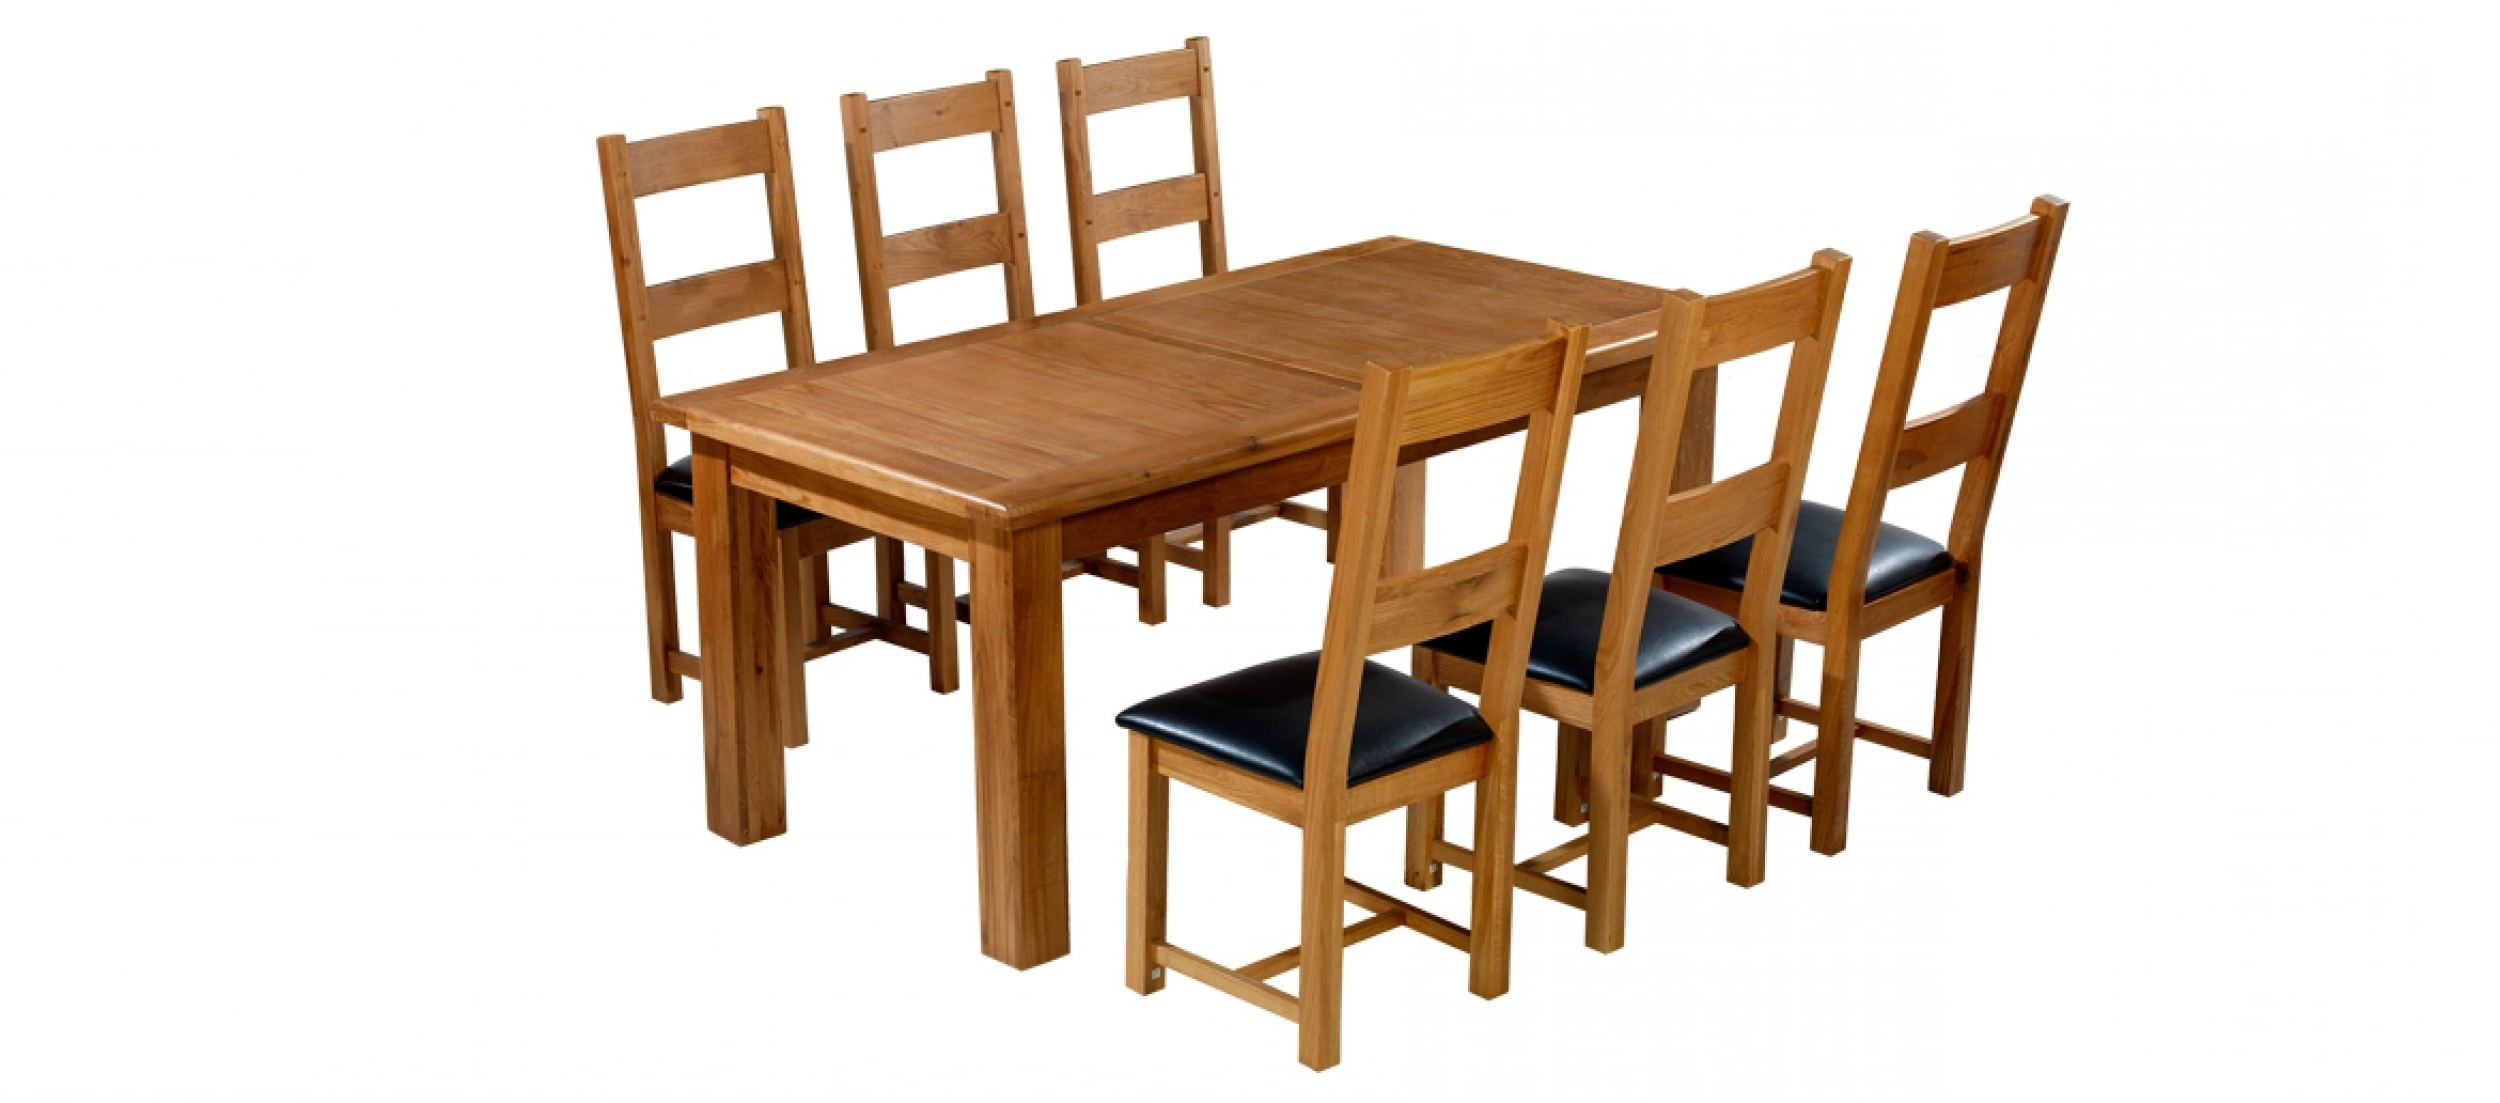 Extending Dining Tables With 6 Chairs within 2018 Barham Oak 180-250 Cm Extending Dining Table And 6 Chairs